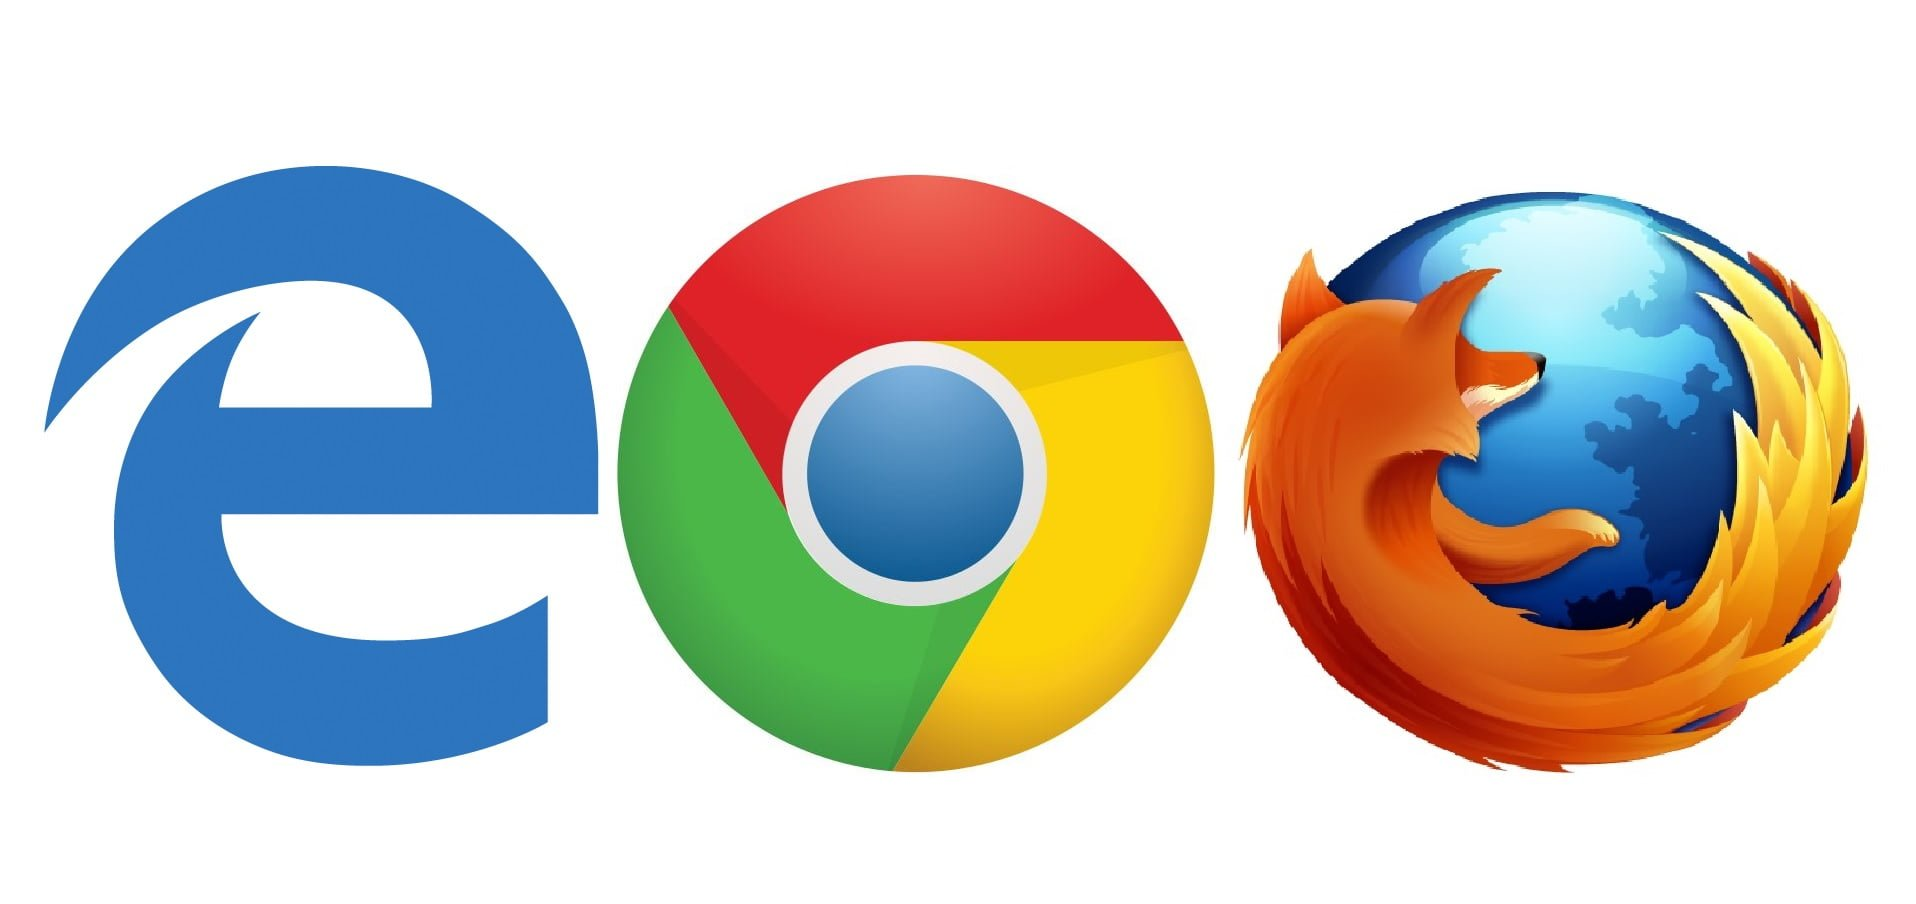 The Best Browser For Battery Life: Chrome Vs Edge Vs